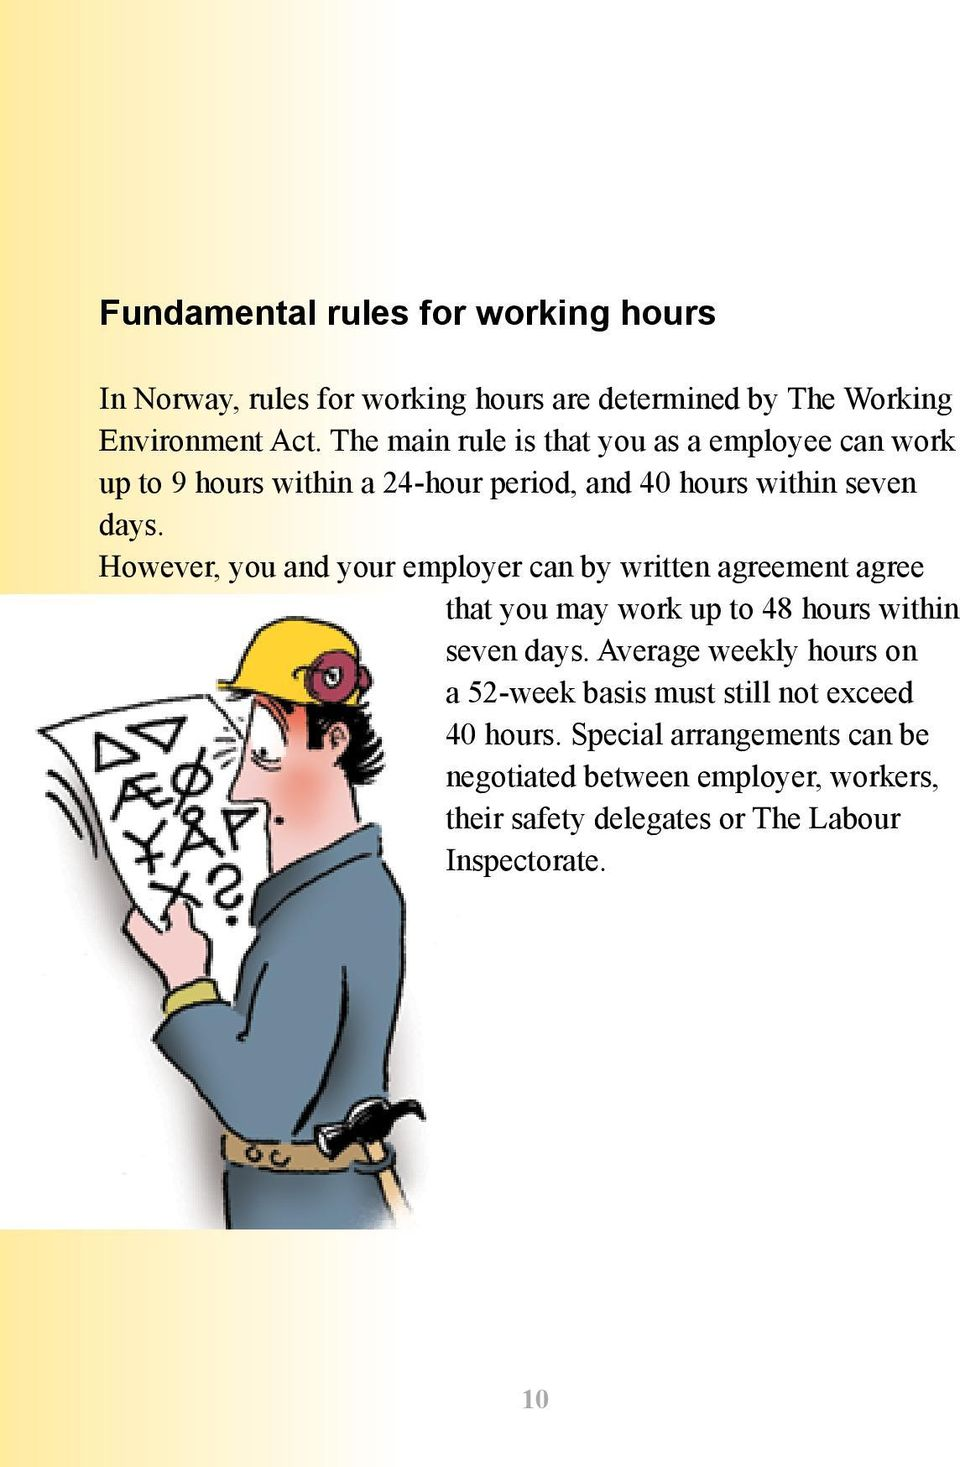 However, you and your employer can by written agreement agree that you may work up to 48 hours within seven days.